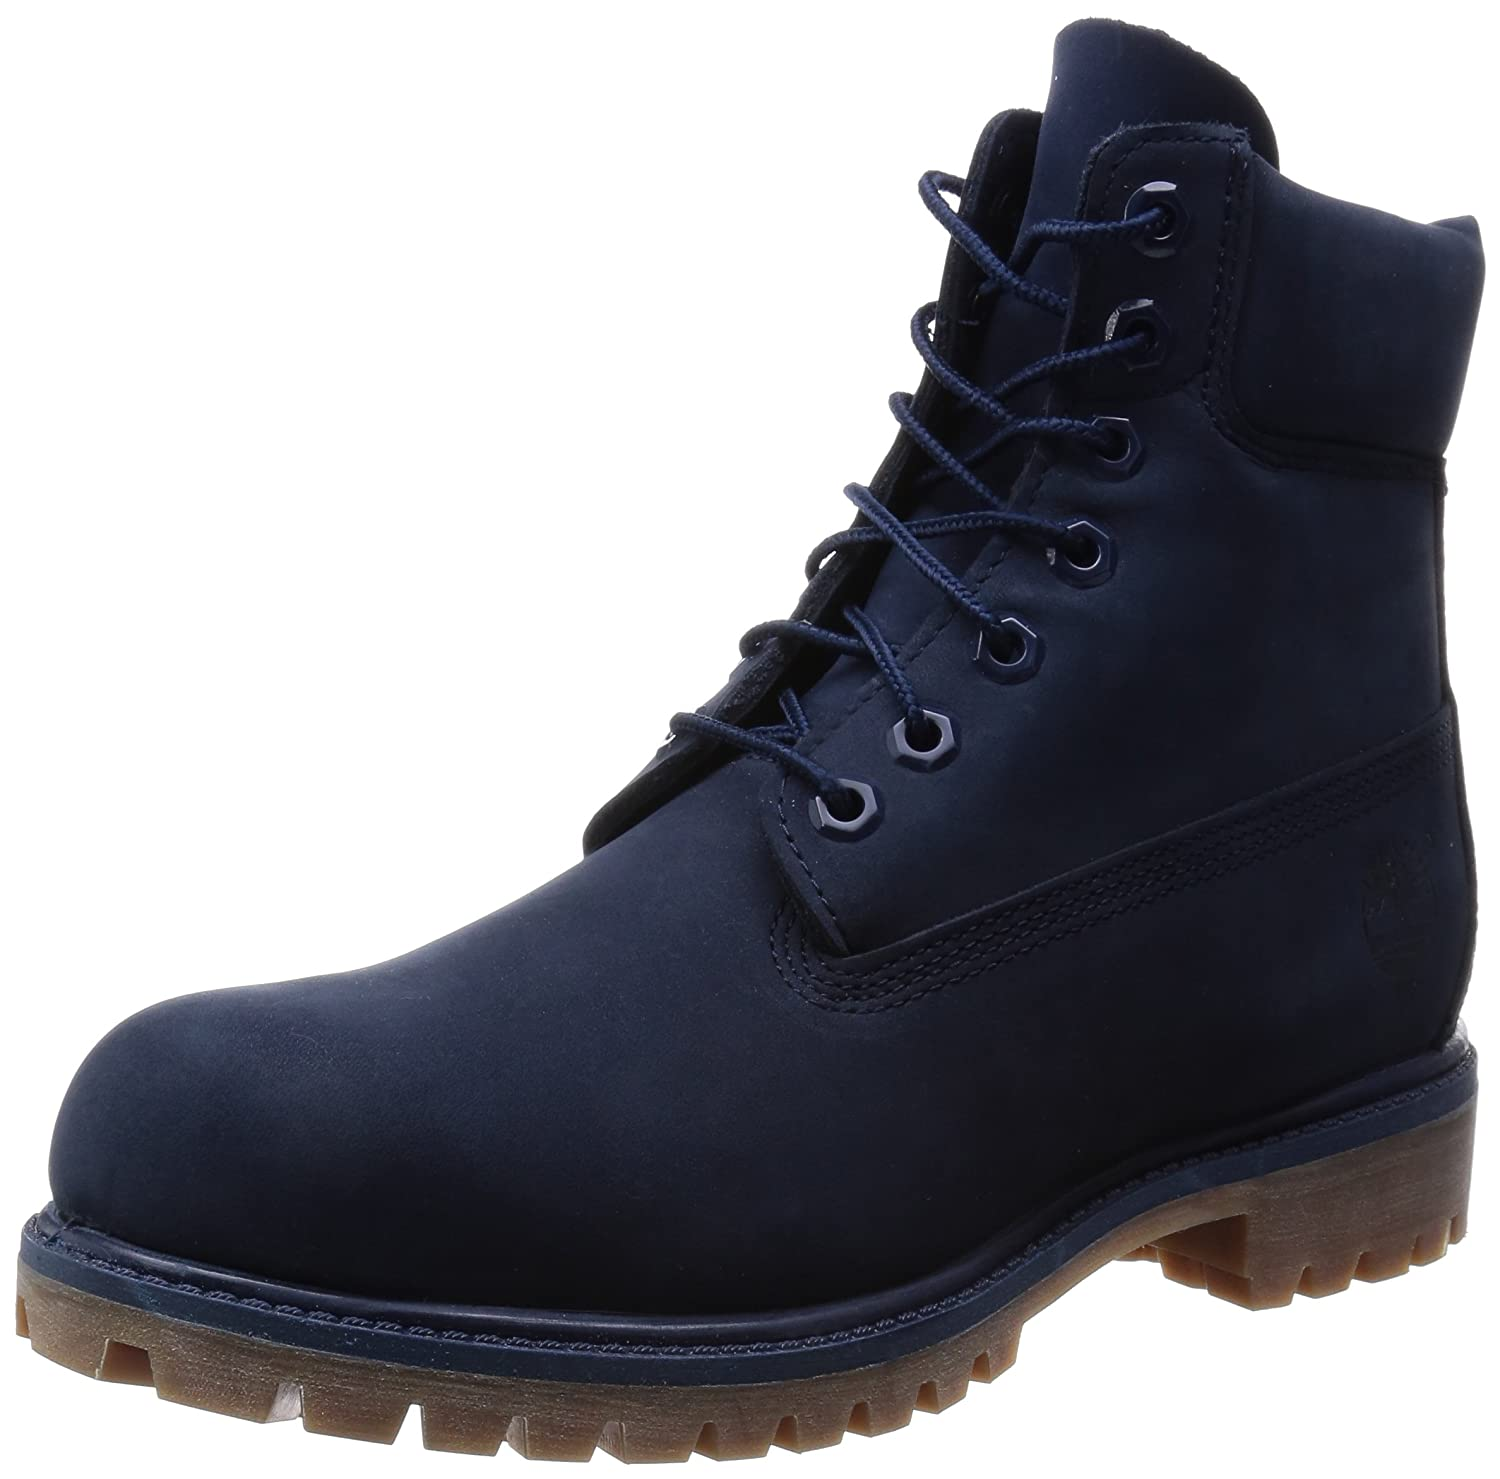 804a9a95efb Timberland Men's 6 Inch Premium Waterproof Boots